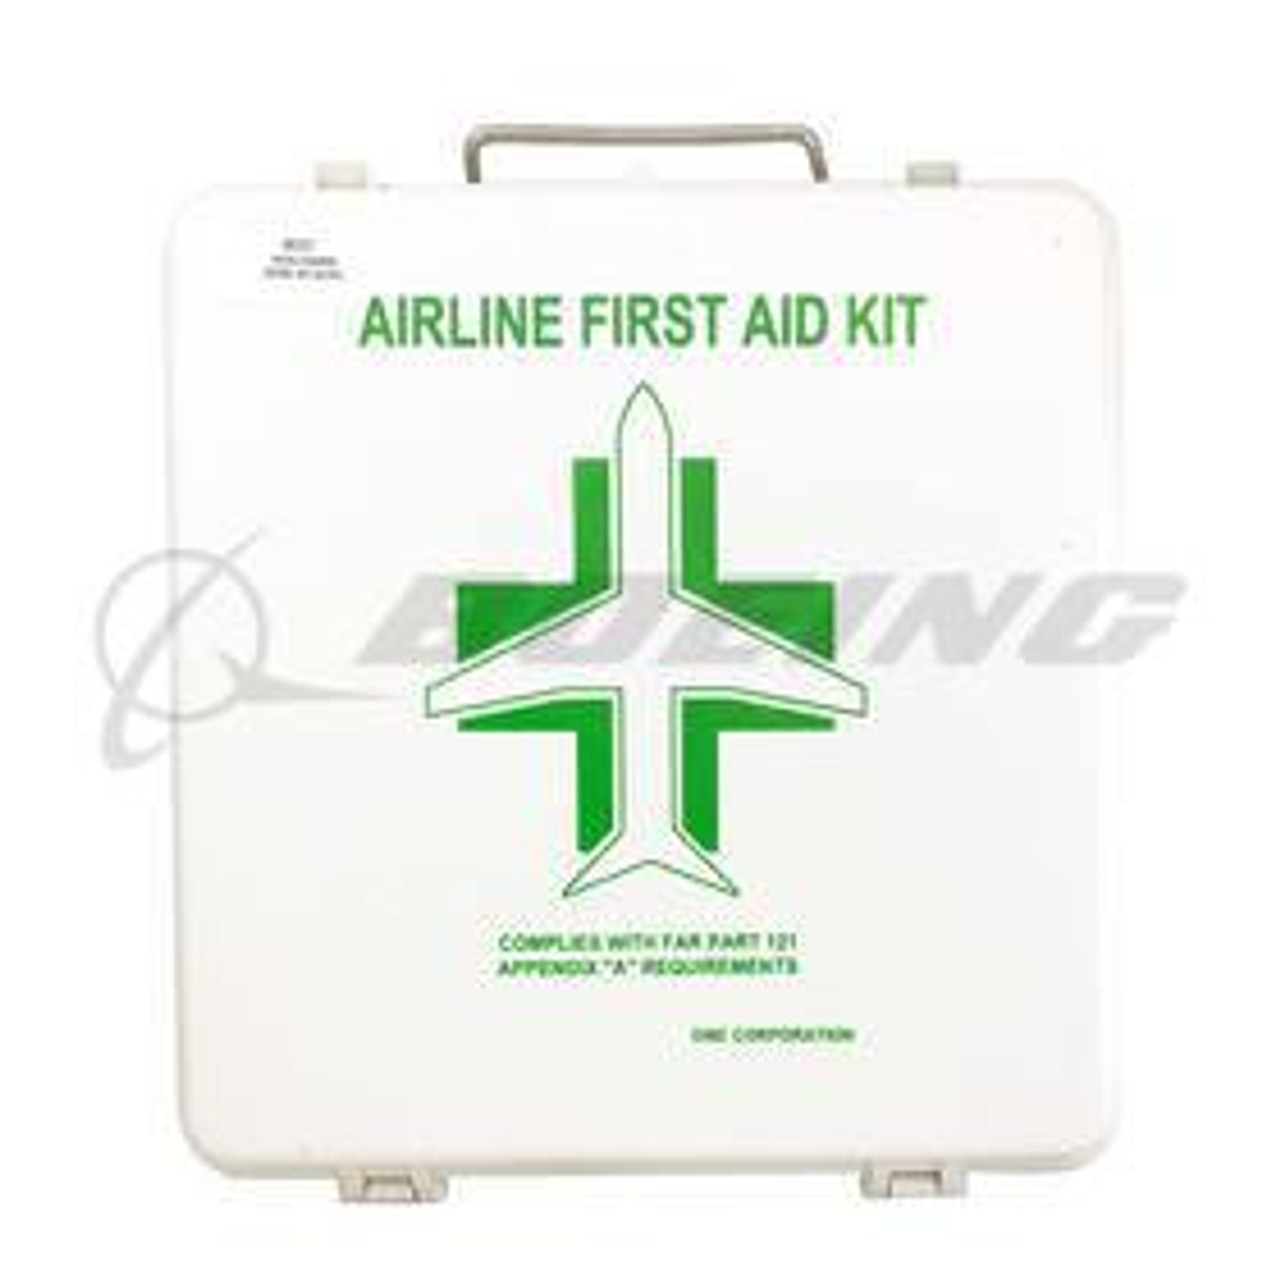 Astronics DME LLC S6-01-0006-004 First Aid Kit - Part#: S6-01-0006-004 by Astronics DME LLC A lightweight, industry approved kit that is designed for use on commercial airlines as well as general aviation aircraft. The case is made of flame resistant polyester and is just the right size for fitting into small aircraft spaces. All the contents of this kit are labeled for simple identification in the event of an emergency.